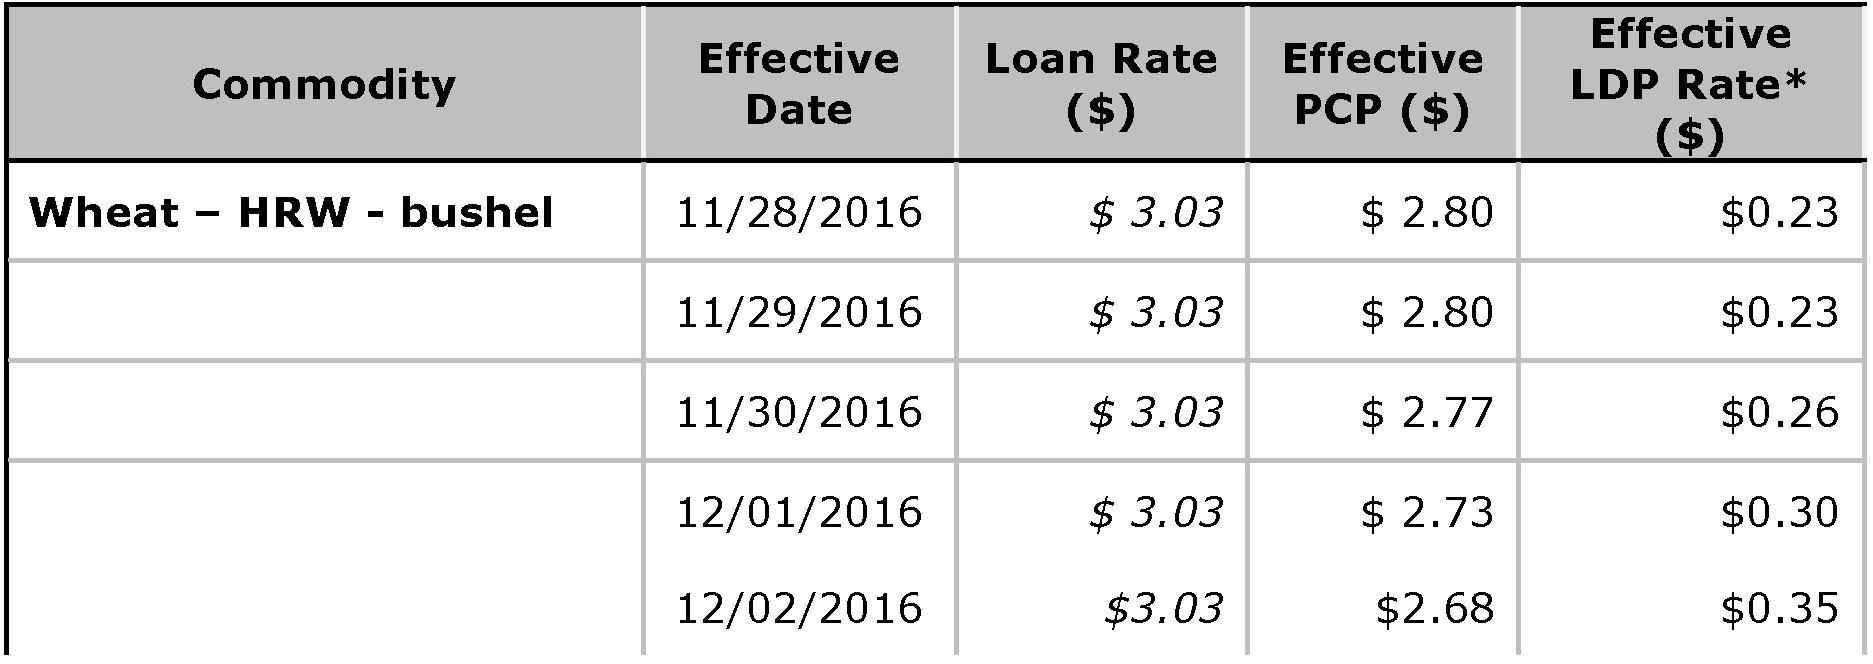 USDA Loan Deficiency Payment - December 2, 2016 - wheat